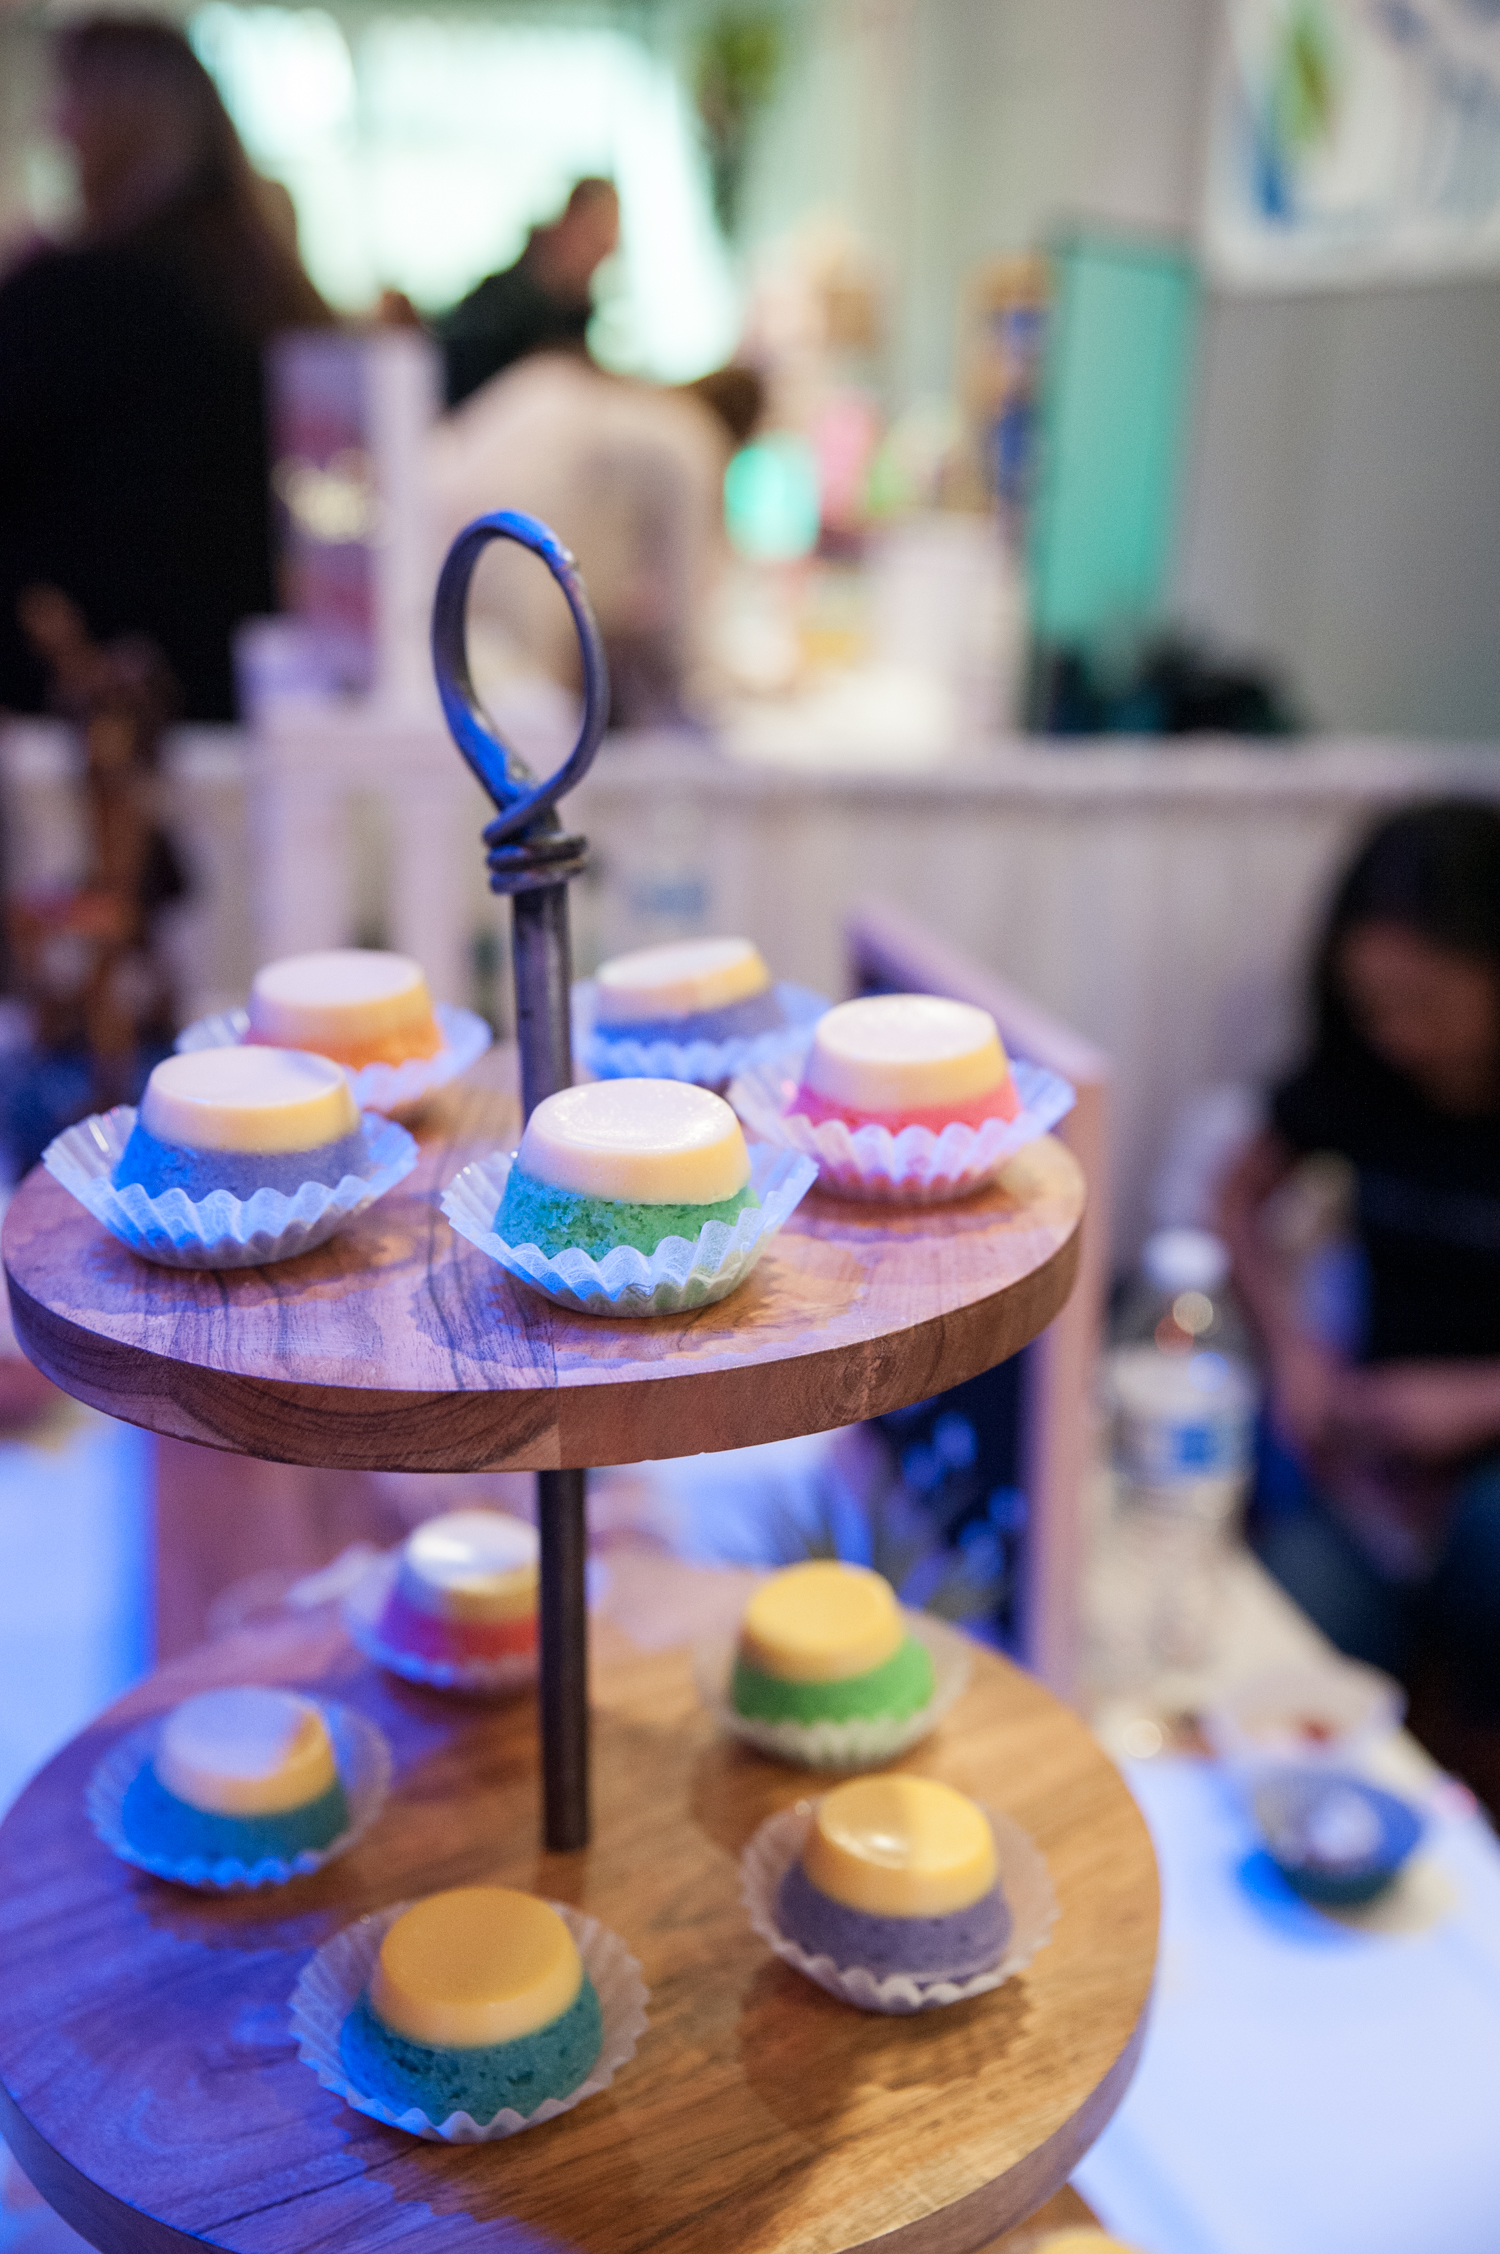 "The Seattle Cake Con & Dessert Showcase 2020 combines talent from around the city and country! Attendees can find a wedding cake baker, chocolatier, doughnut expert - you name it. Cake Con continues Monday, Feb. 17 at Block 41 in Belltown, from 10 a.m. through 5 p.m. Tickets are $25 and can be bought{&nbsp;}<a  href=""https://www.seattlecakecon.com/purchase-tickets-1"" target=""_blank"" title=""https://www.seattlecakecon.com/purchase-tickets-1"">online</a>{&nbsp;}or at the door. (Image: Elizabeth Crook / Seattle Refined)"